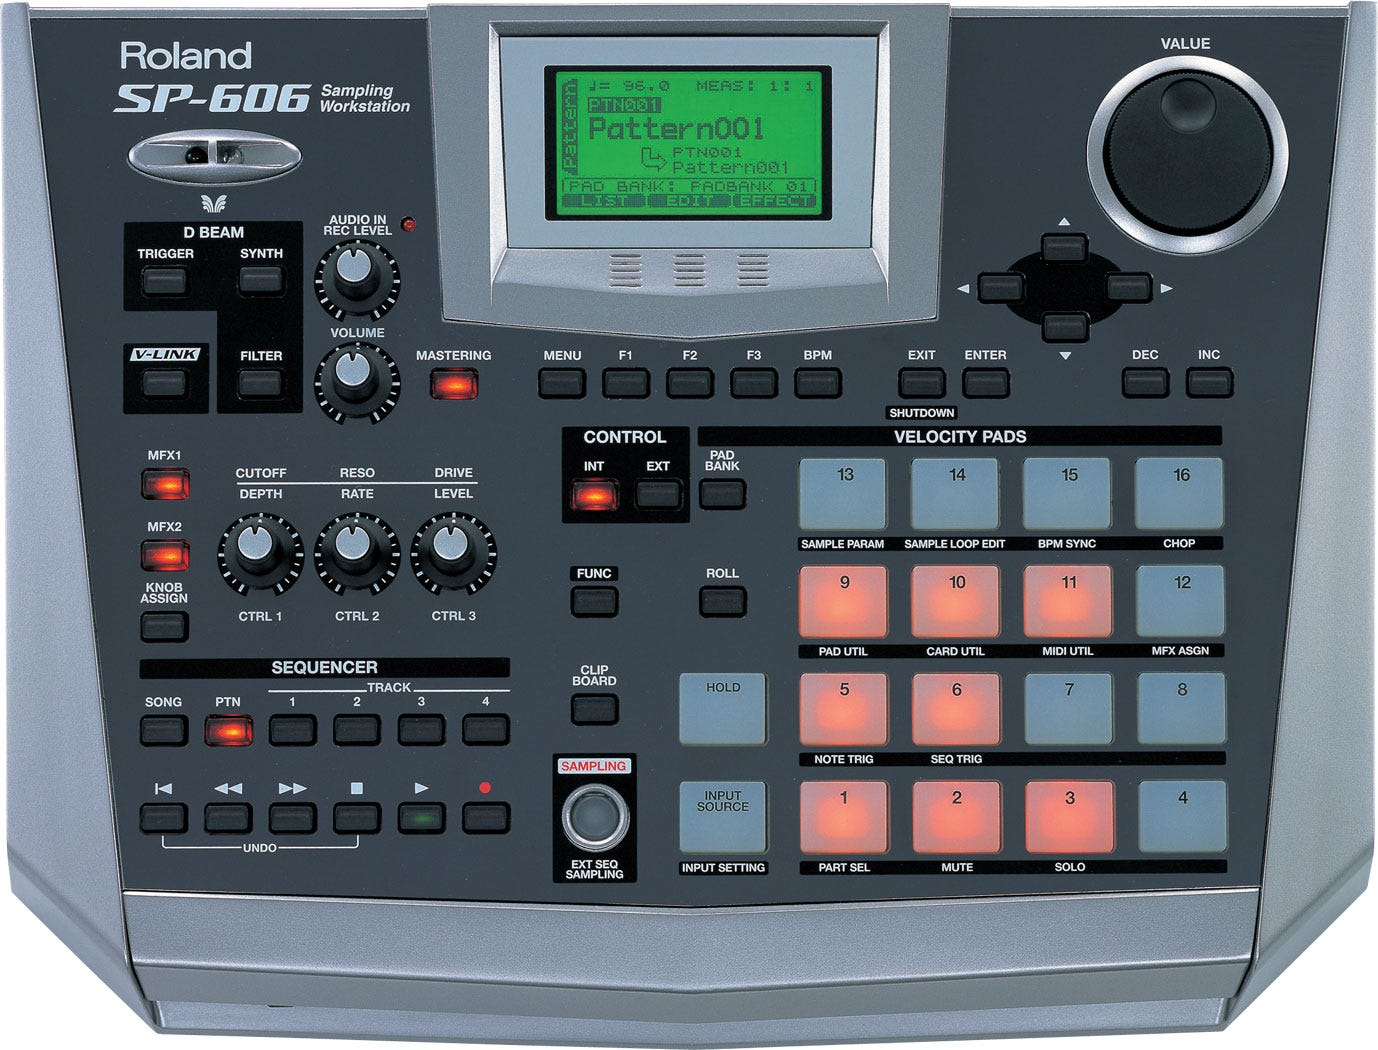 SP-606 | Sampling Workstation - Roland